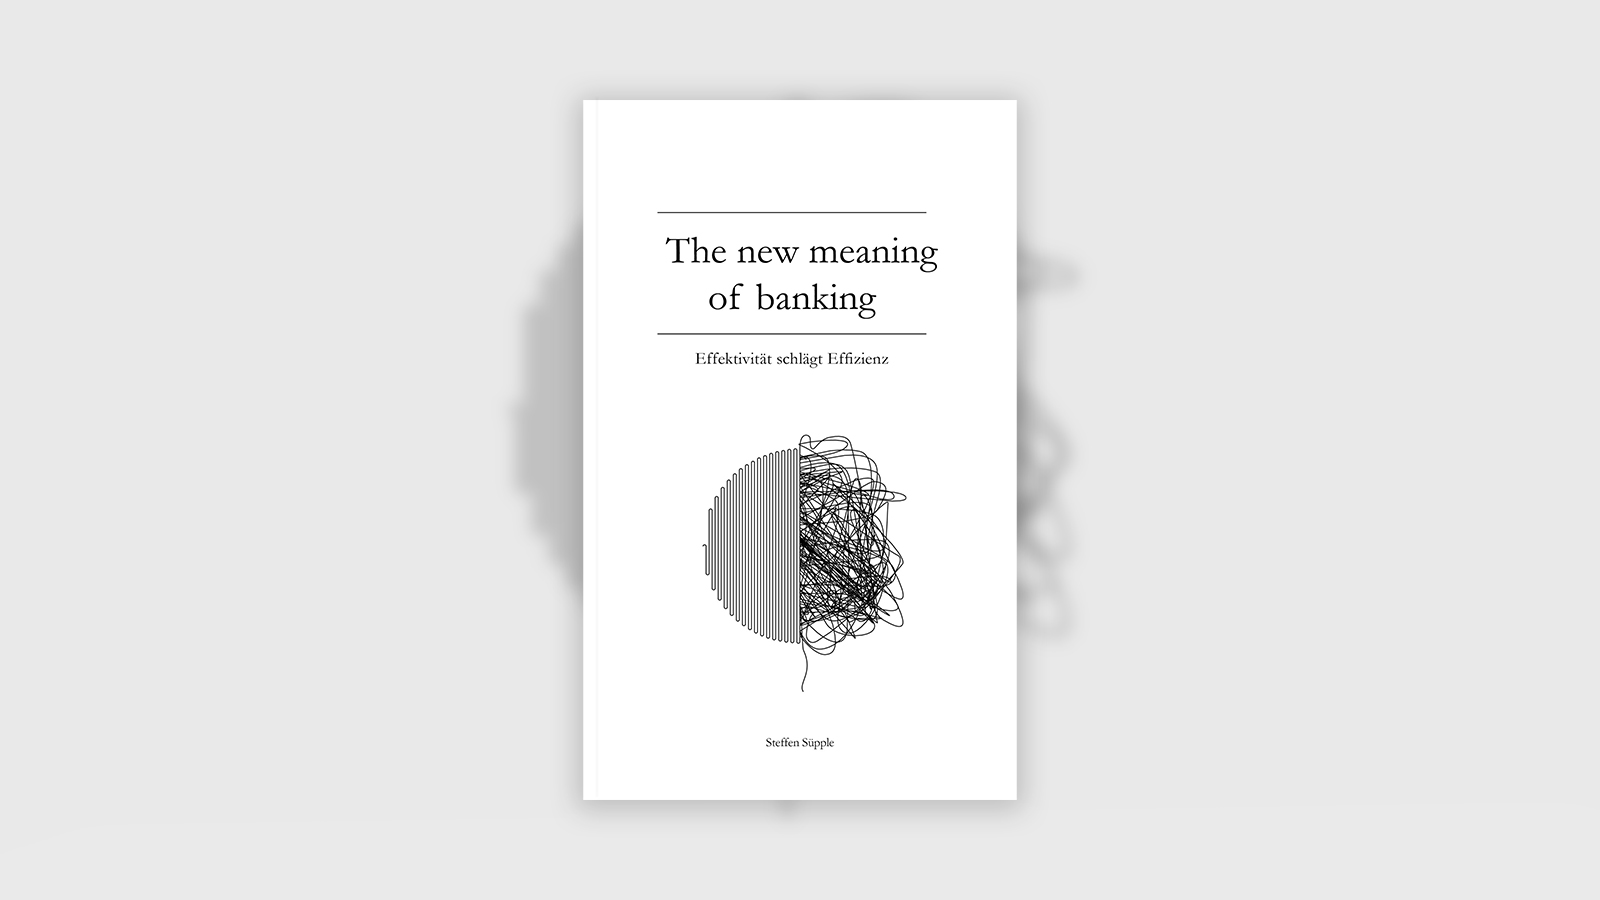 The new meaning of banking